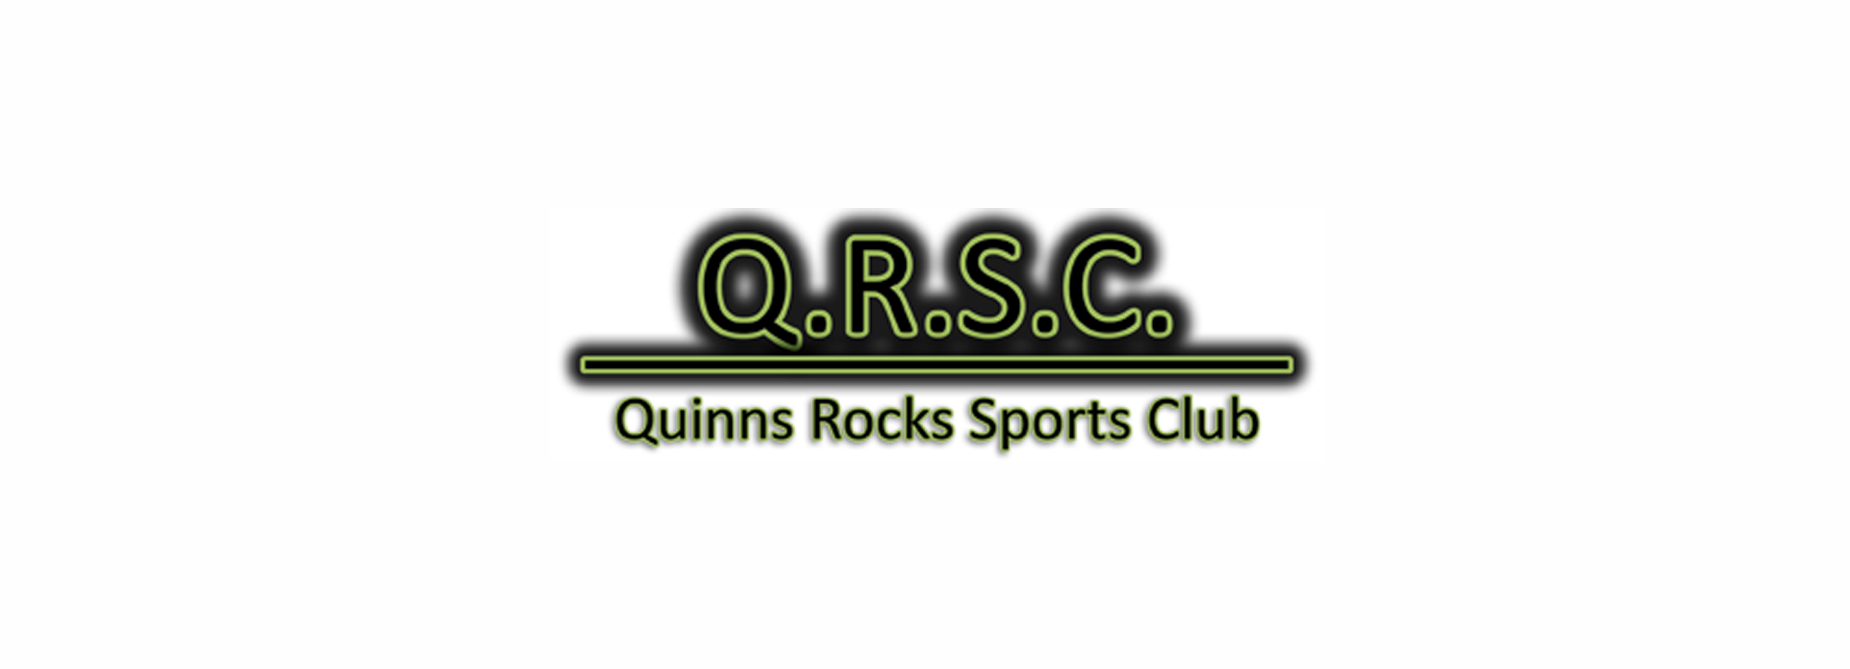 Quinns Rocks Sports Club Logo